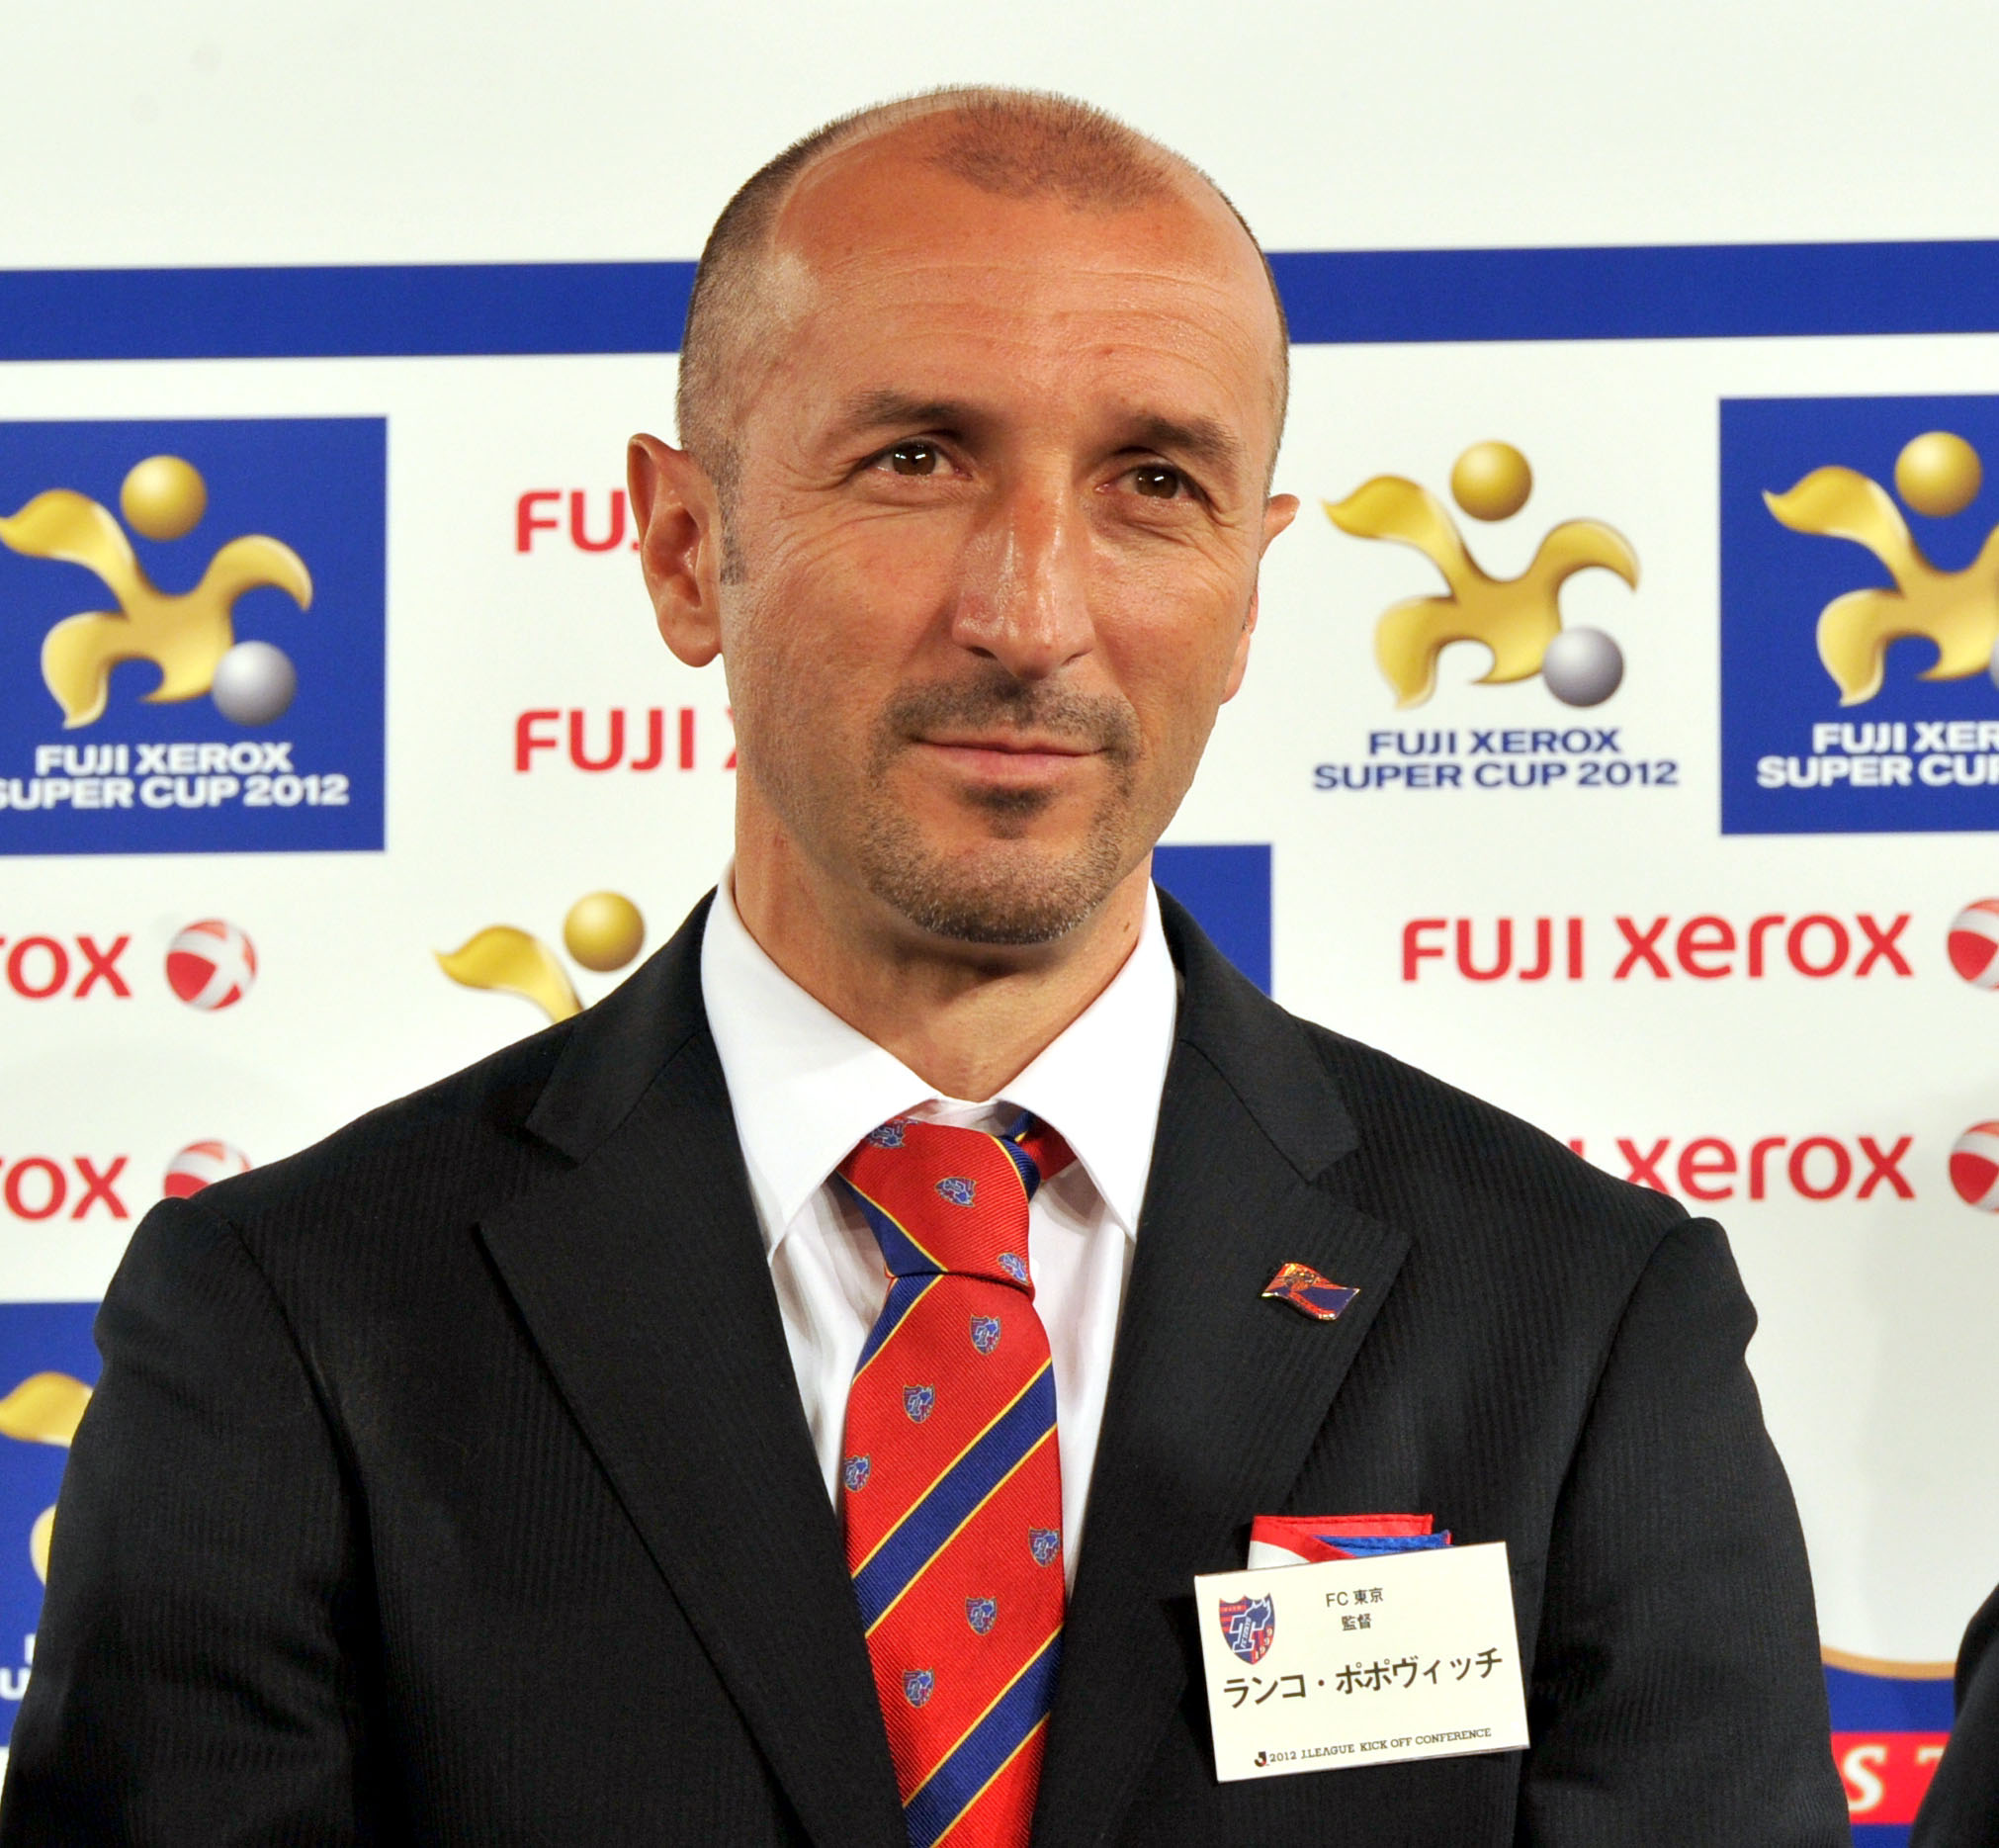 Big expectations: Ranko Popovic takes over an FC Tokyo club that won the J2 title and Emperor's Cup last season. | YOSHIAKI MIURA